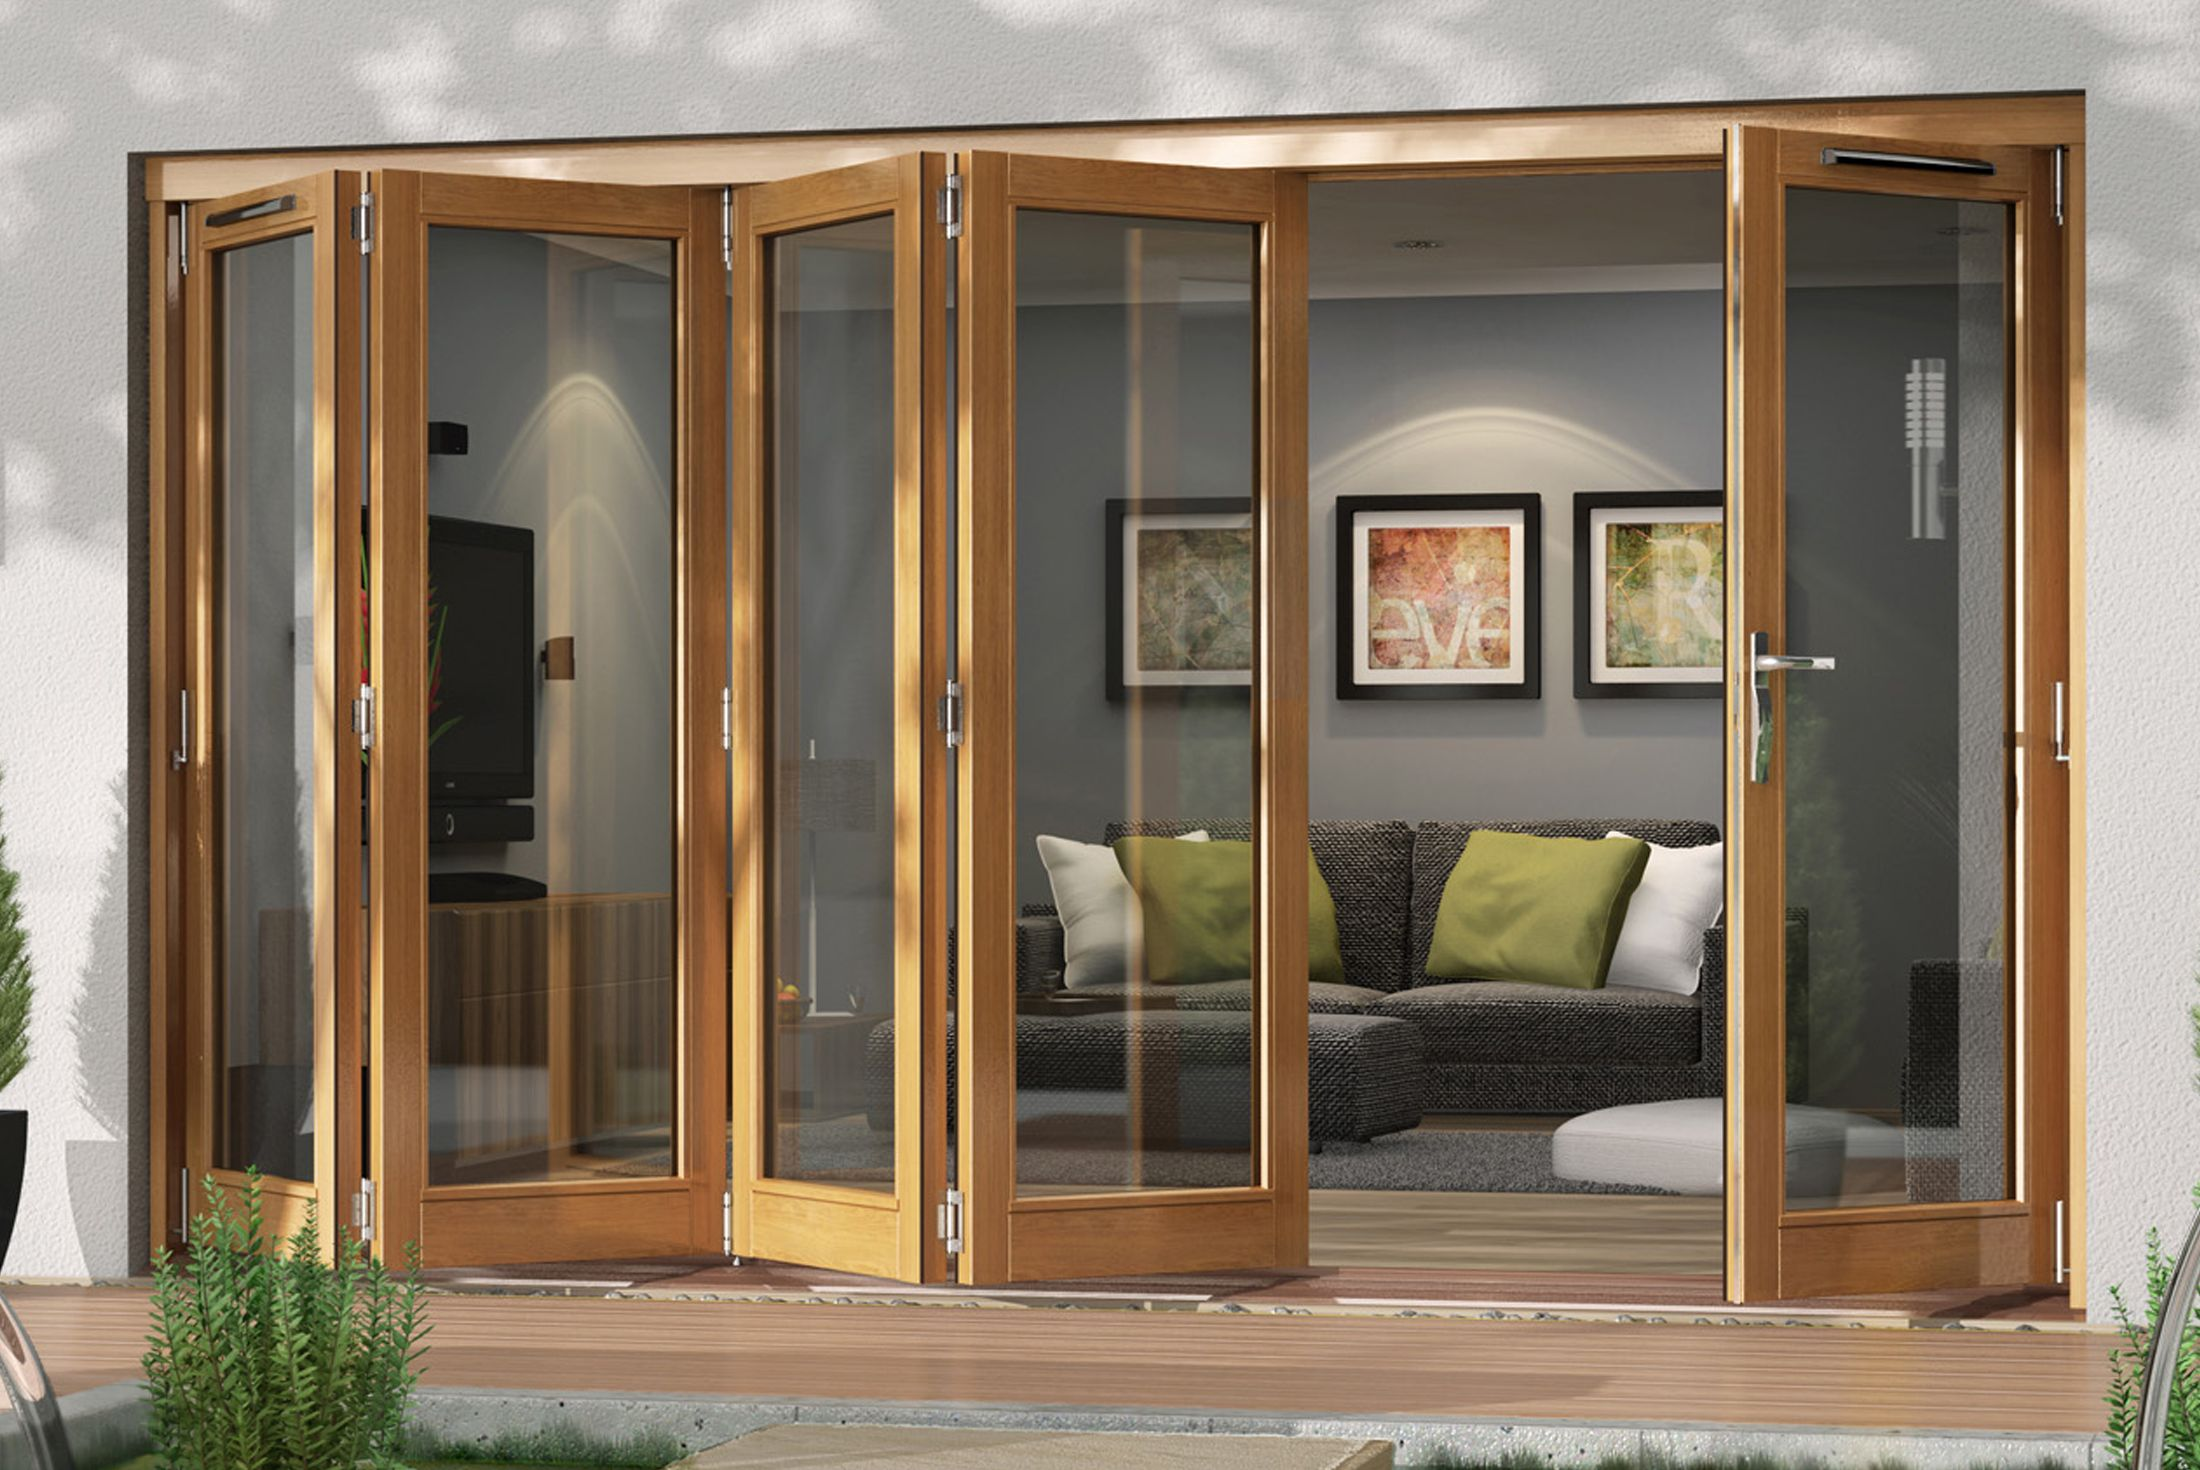 Patio doors buying guide | Ideas & Advice | DIY at B&Q